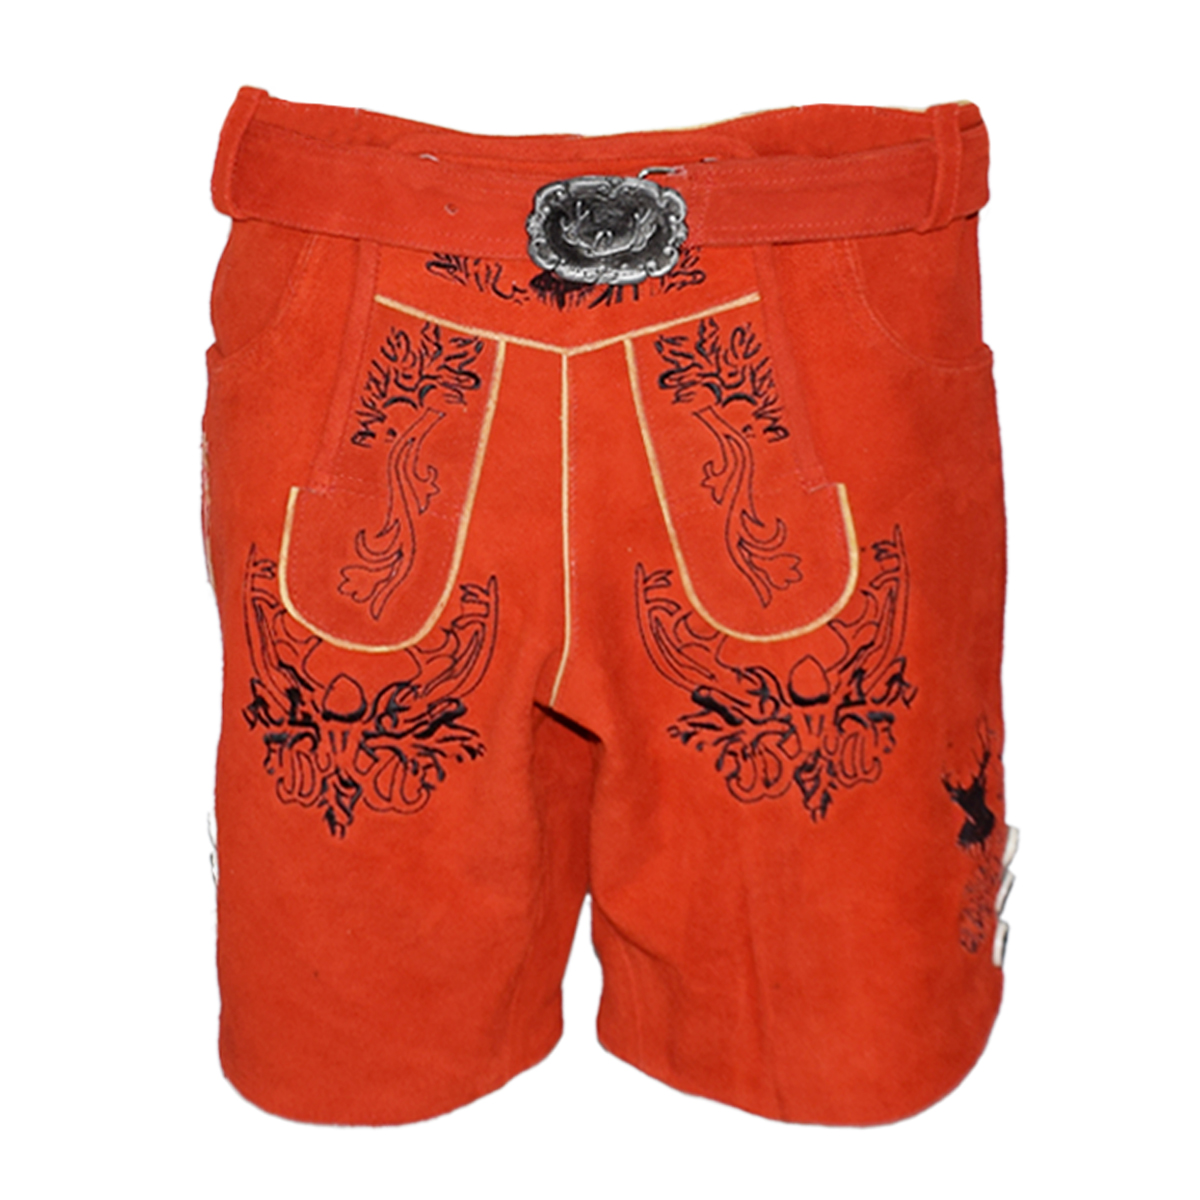 RED MEN SHORT LEDERHOSEN WITH BLACK ART WORK